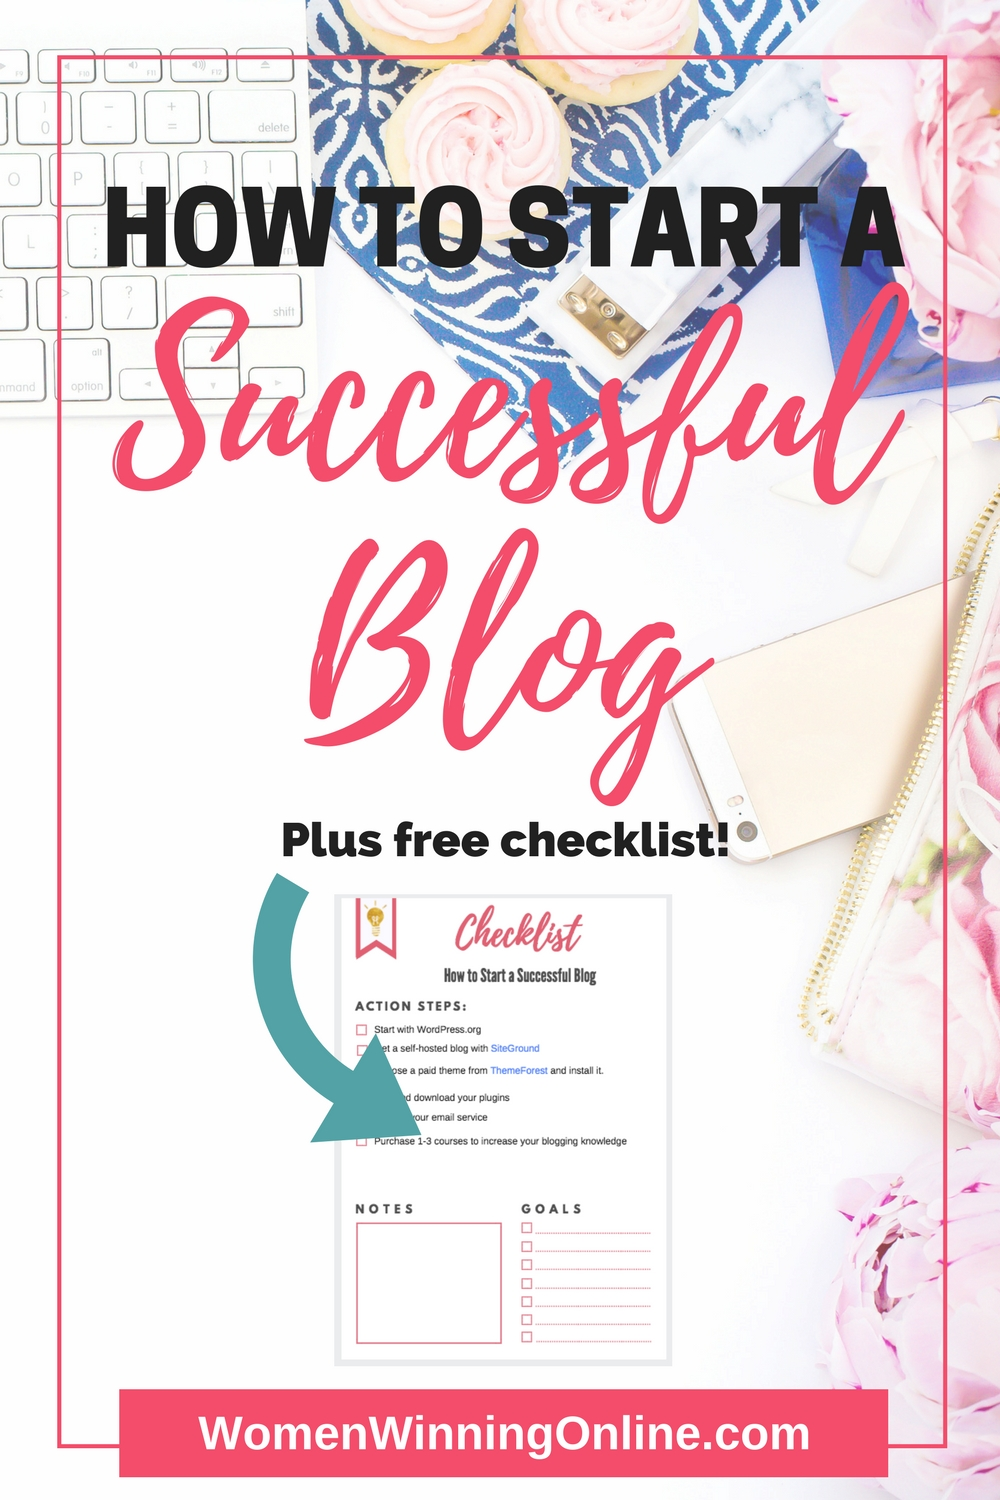 Do you know the steps to create a successful blog? Check out this post to find out!